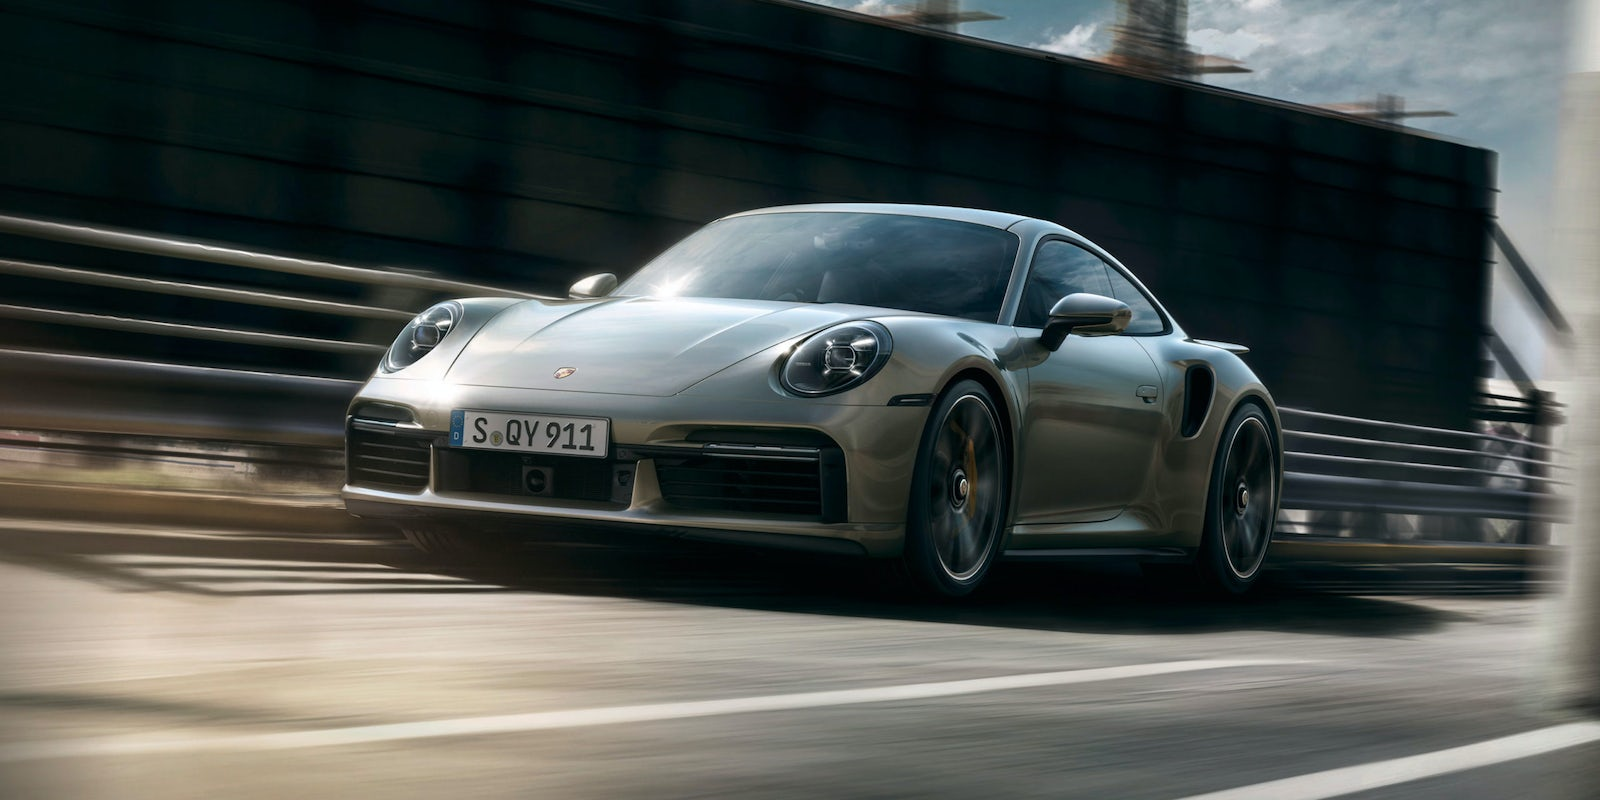 2020 Porsche 911 Turbo S Revealed Carwow The largest 911 fan community on facebook. 2020 porsche 911 turbo s revealed carwow